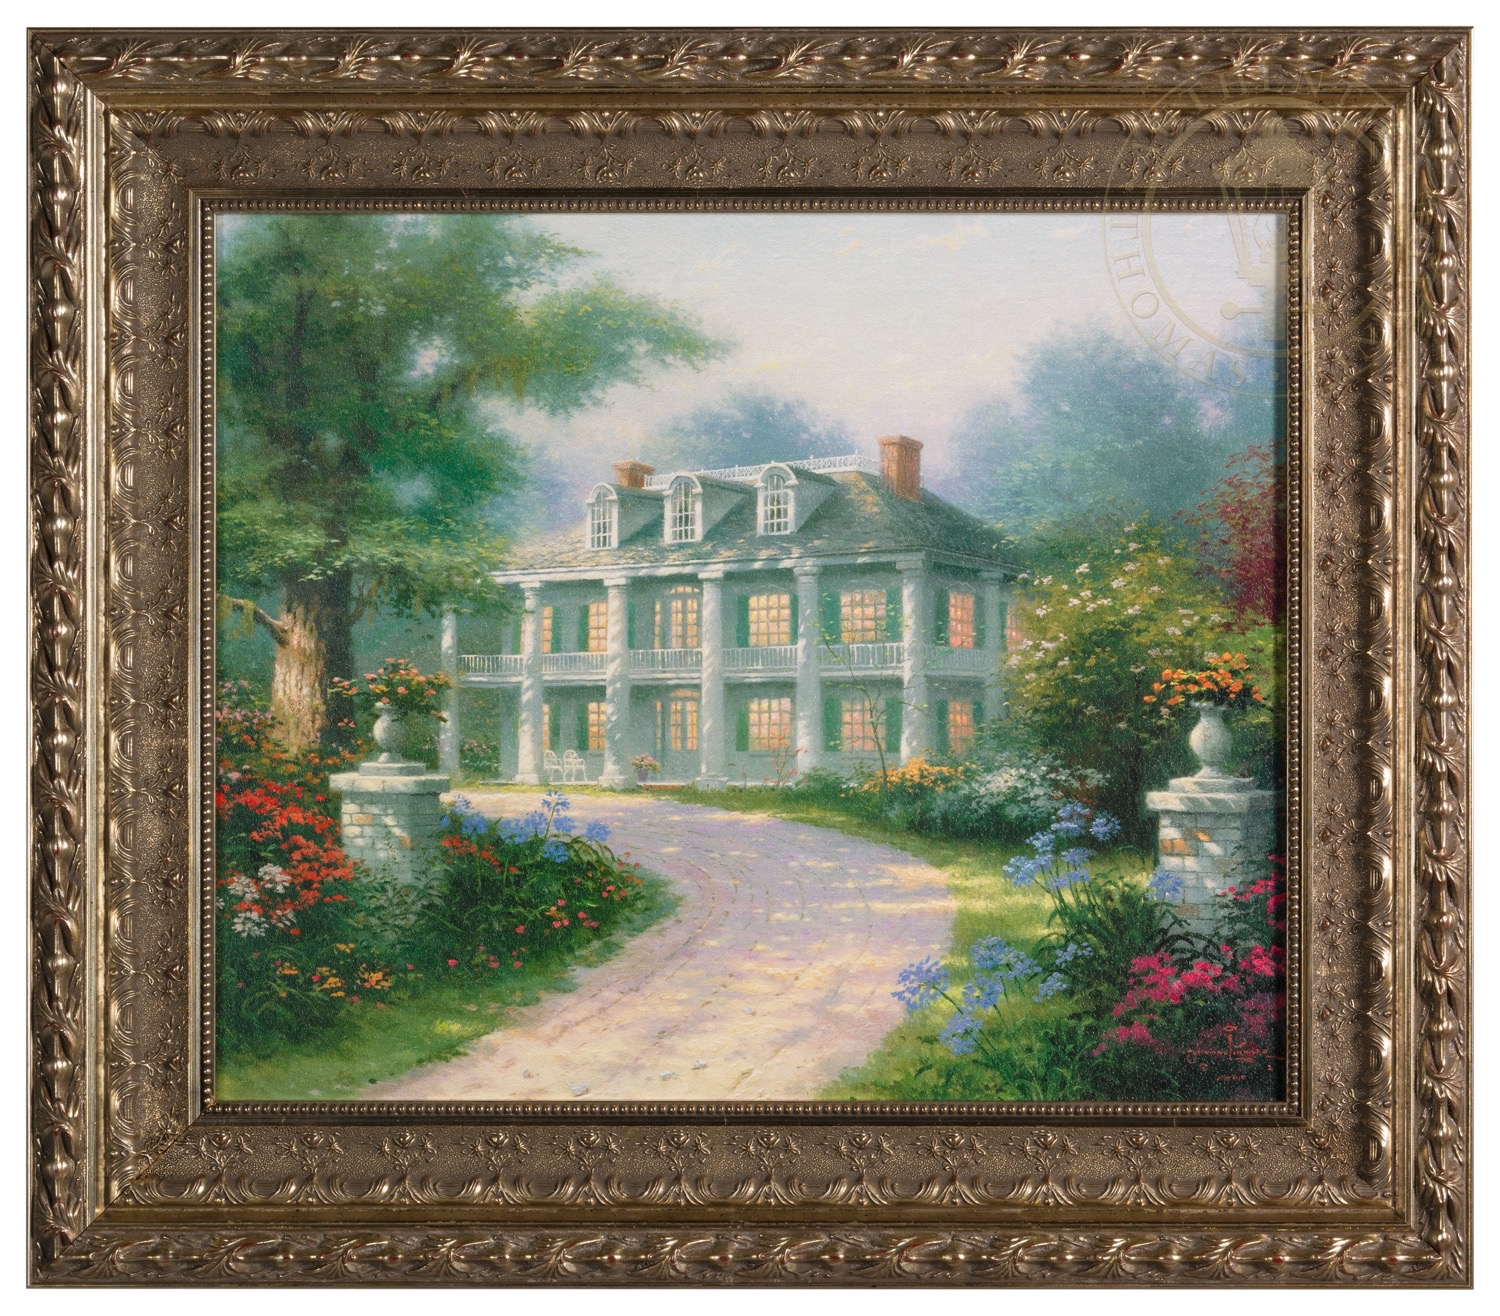 Homestead House Framed Textured Print Thomas Kinkade